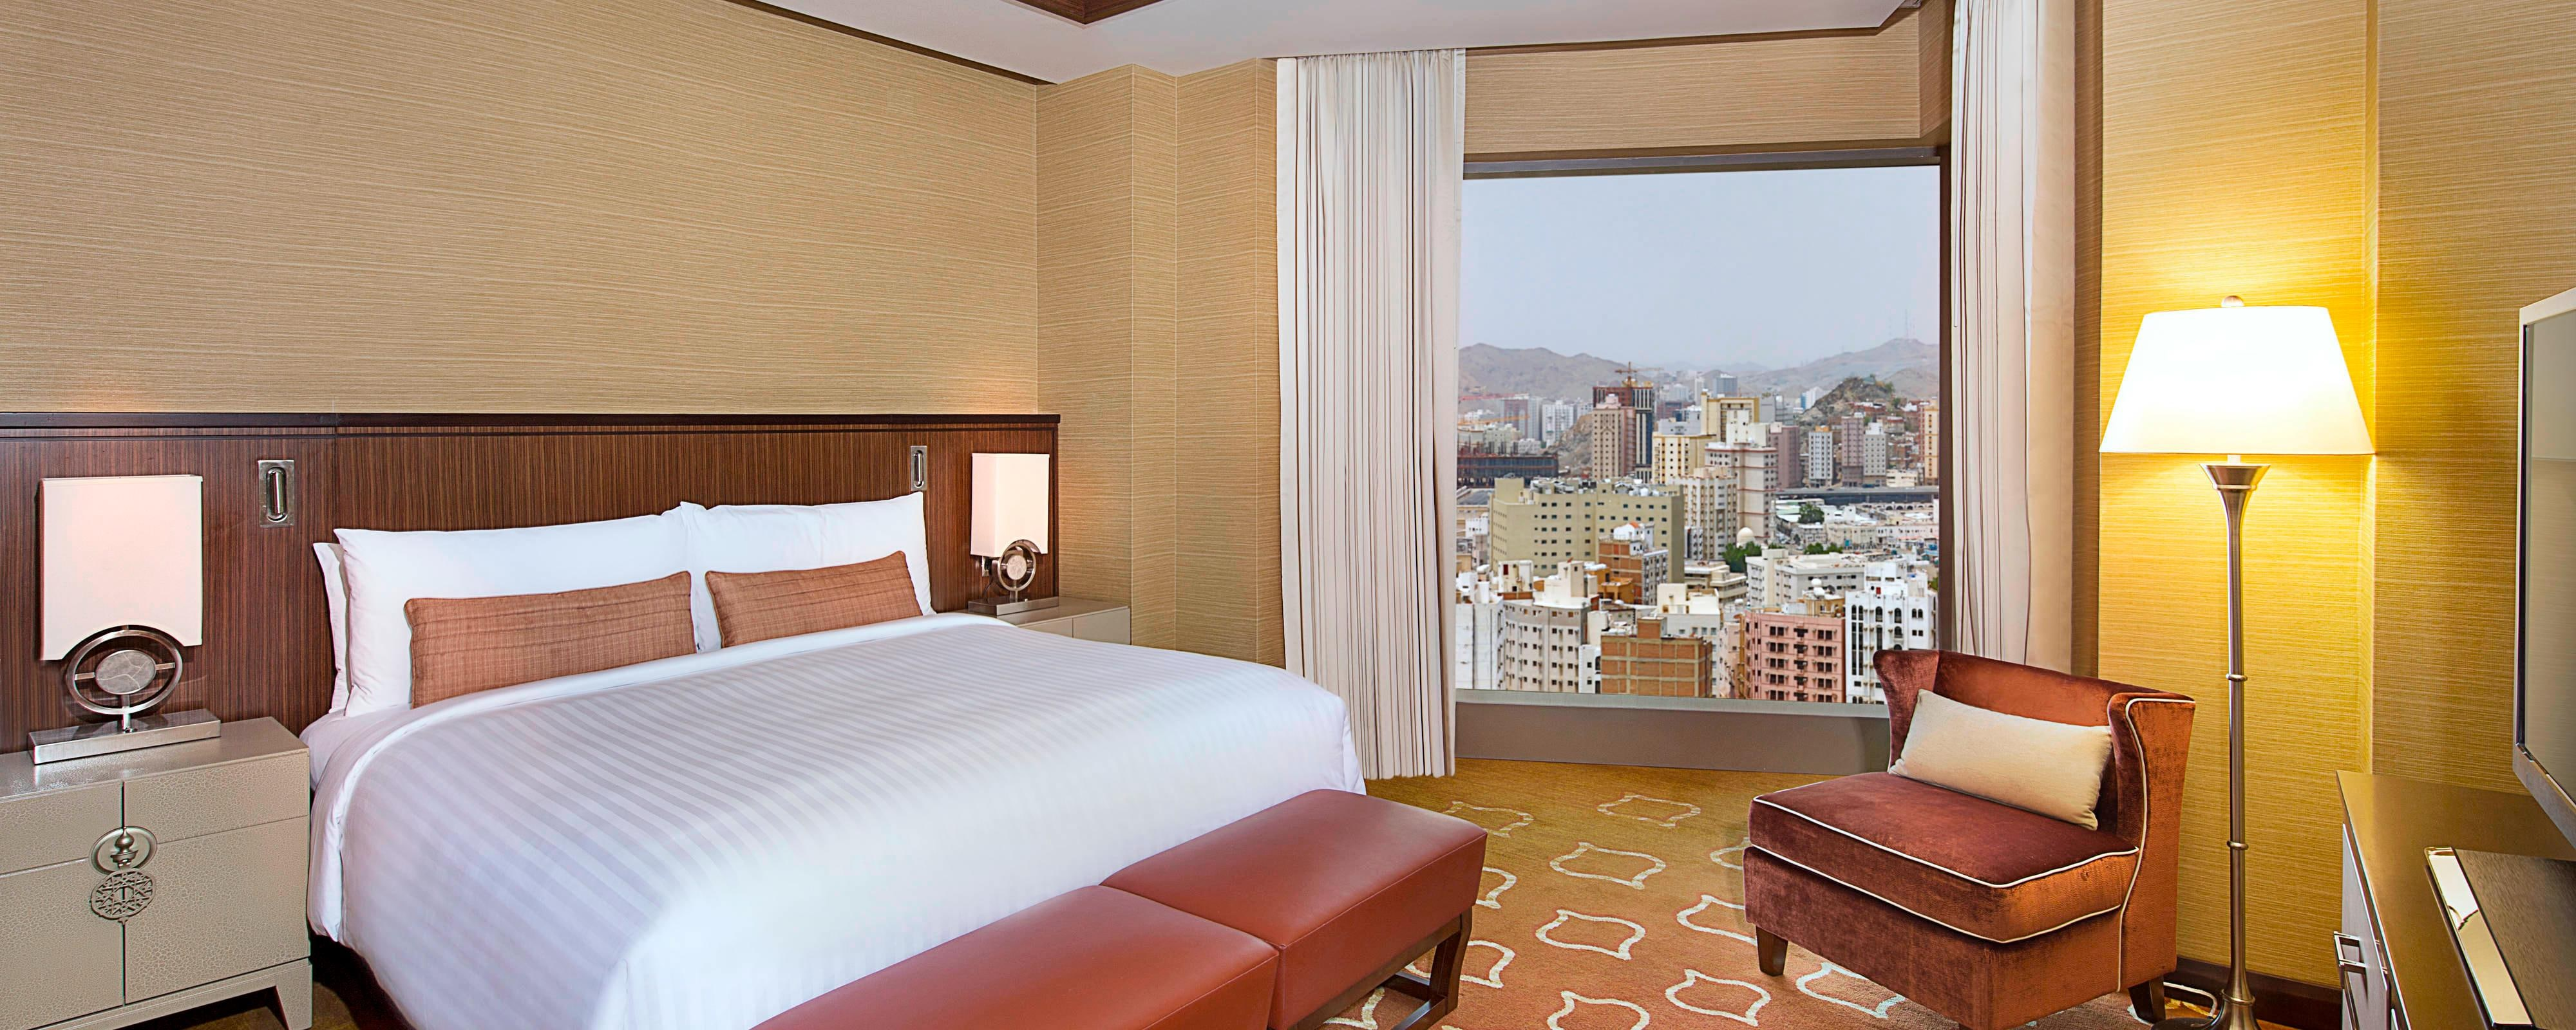 Makkah Marriott Hotel Room